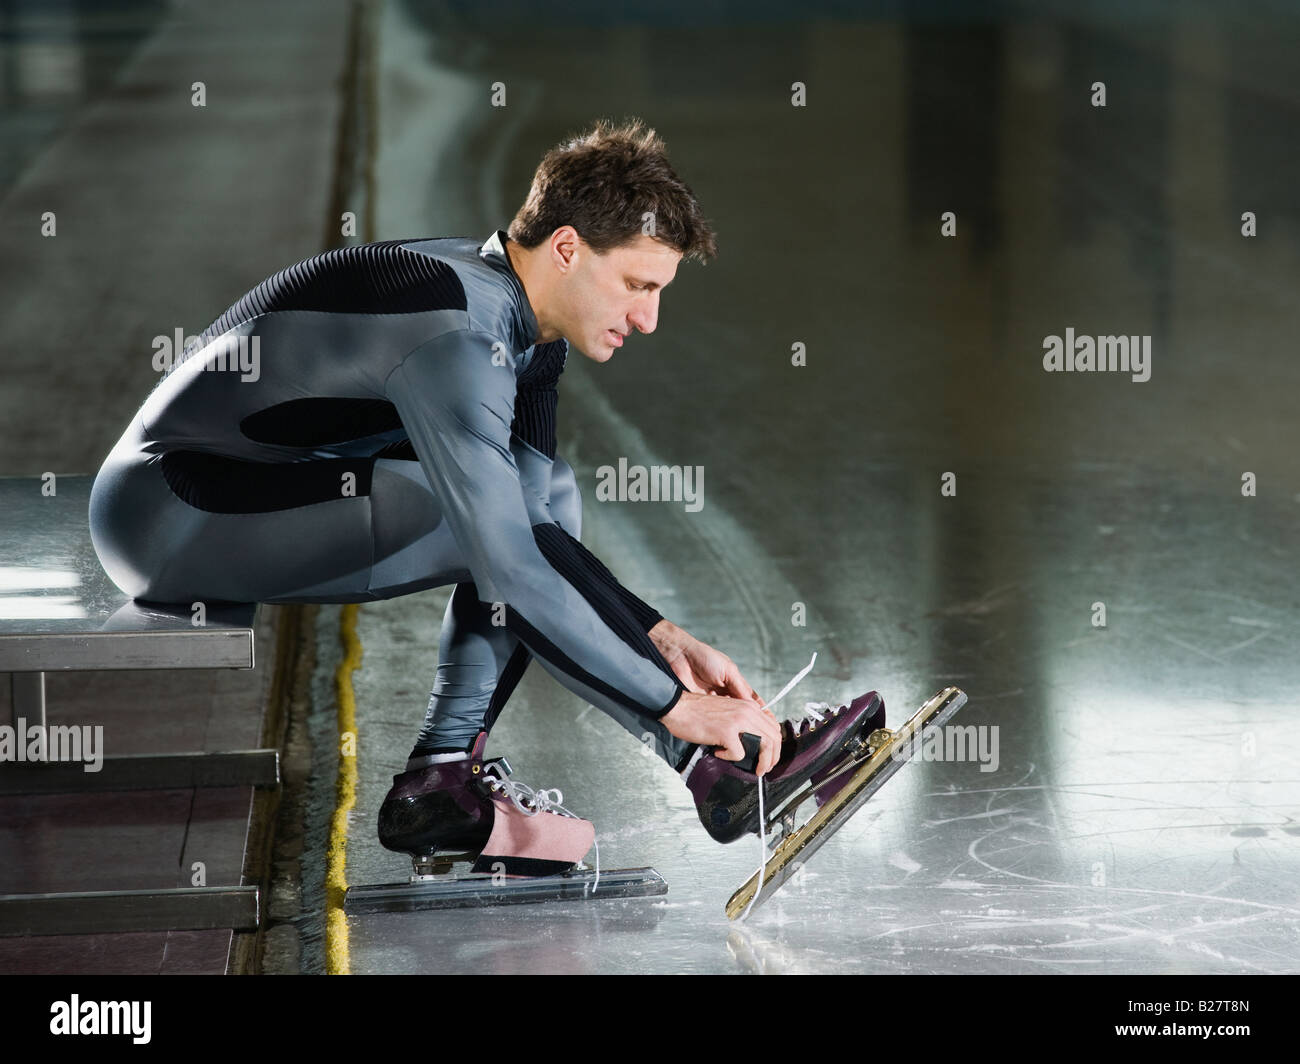 Male speed skater ties skate lace - Stock Image